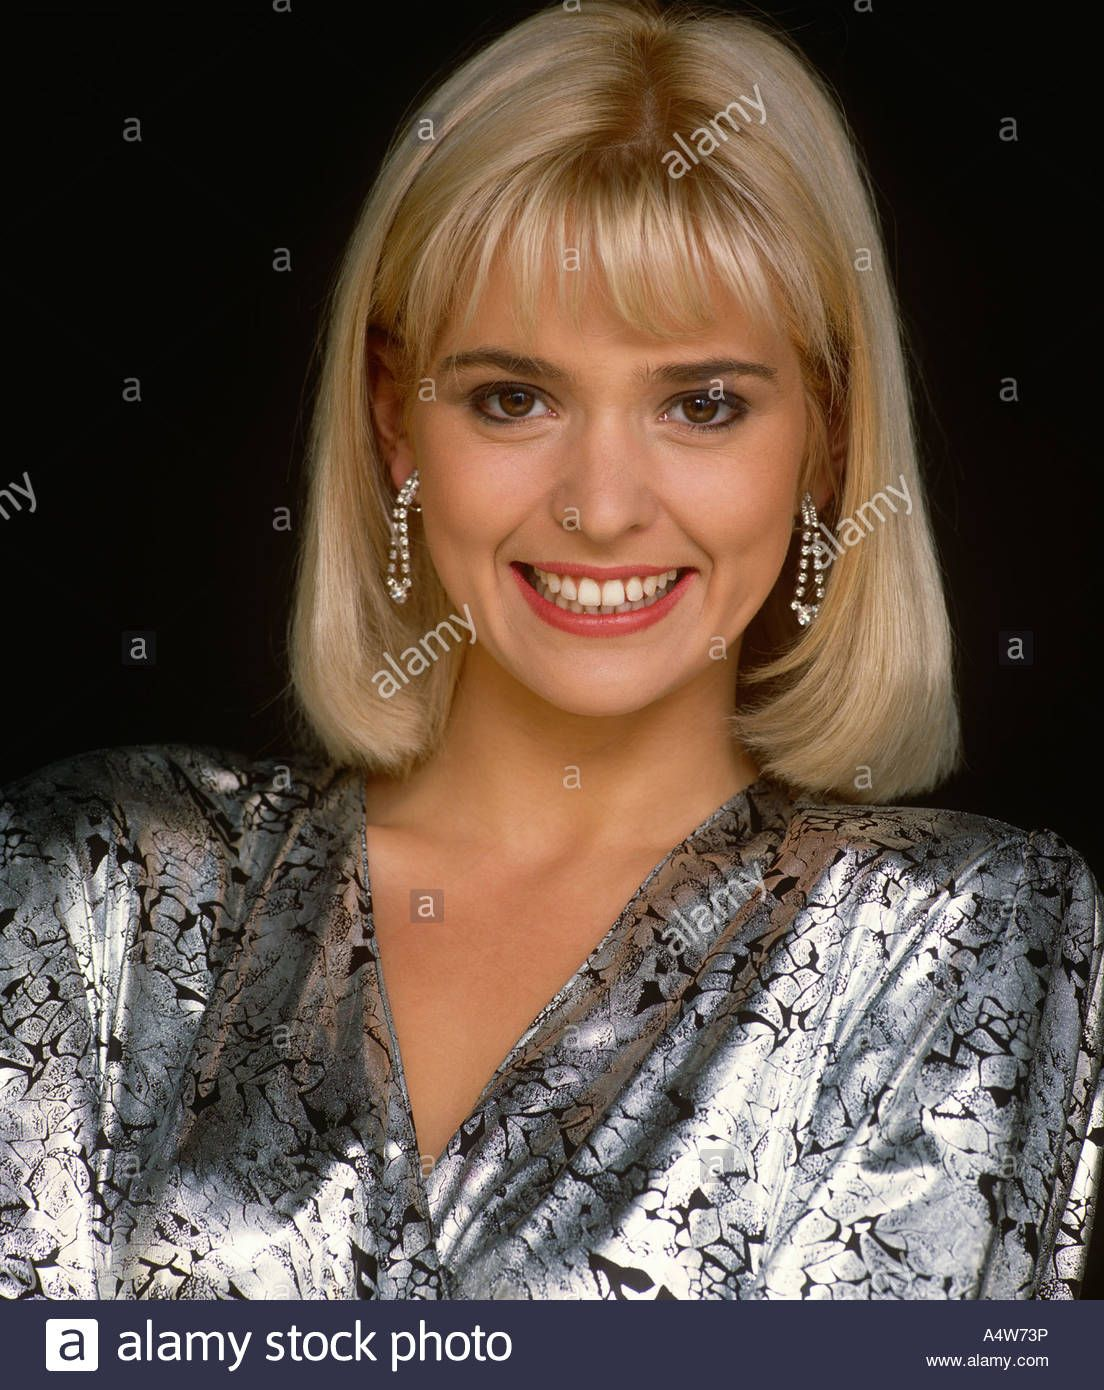 JOANNE GUEST IN SILVER AND BLACK WRAP TOP Stock Photo